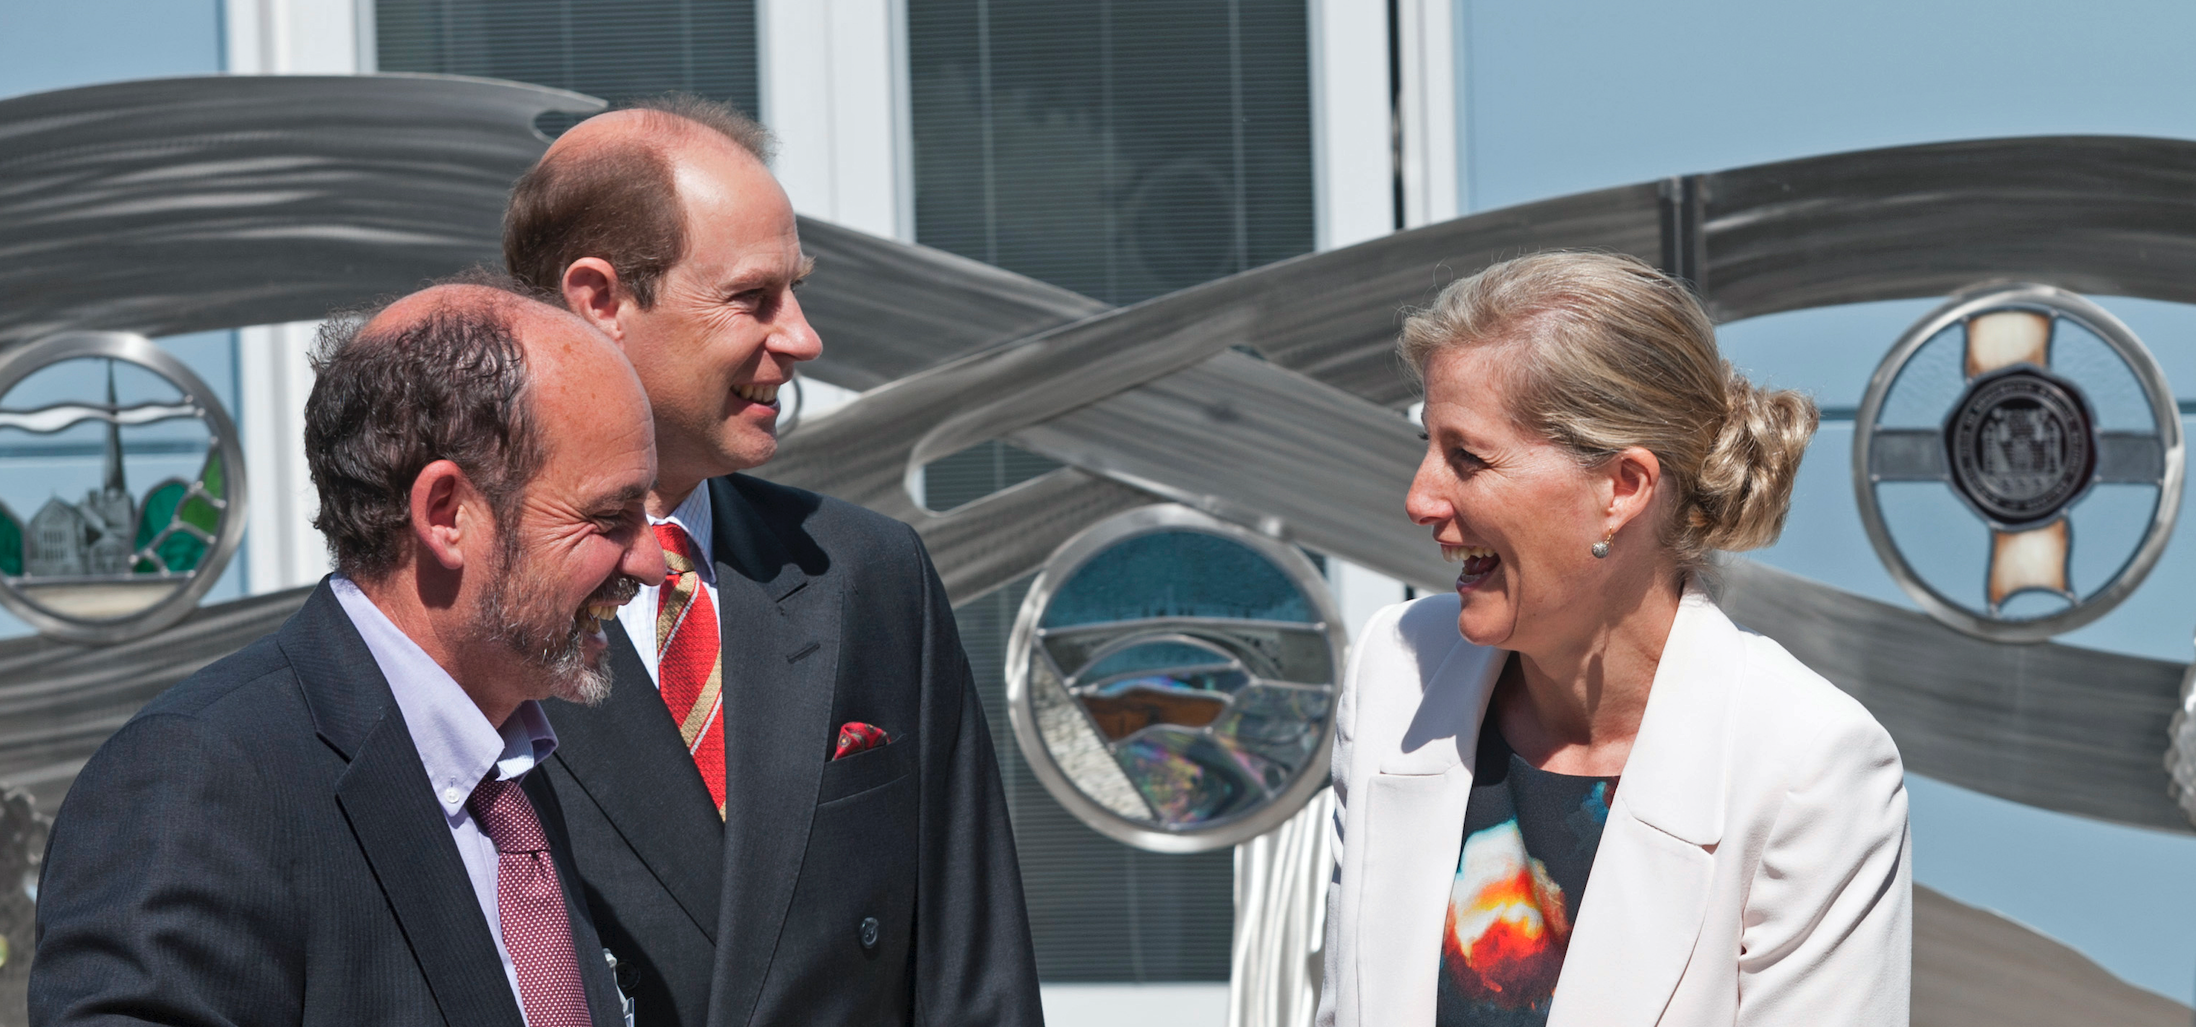 ian Marlow at Royal opening with Earl and Countess of Wesex